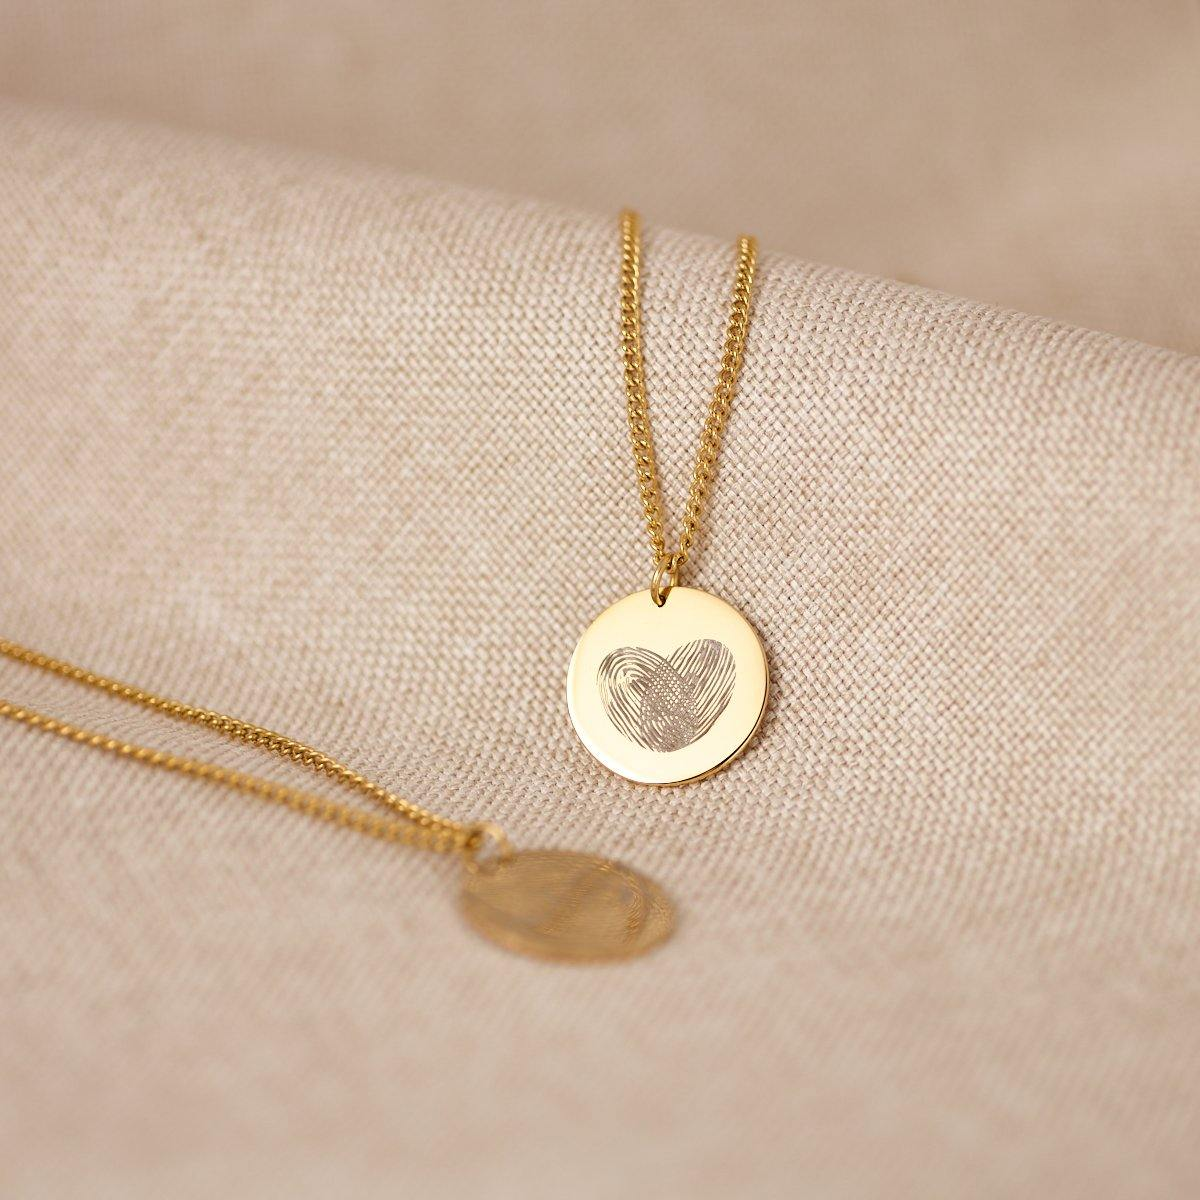 Coin 2 Fingerprints Necklace - Duton Gepersonaliseerde sieraden